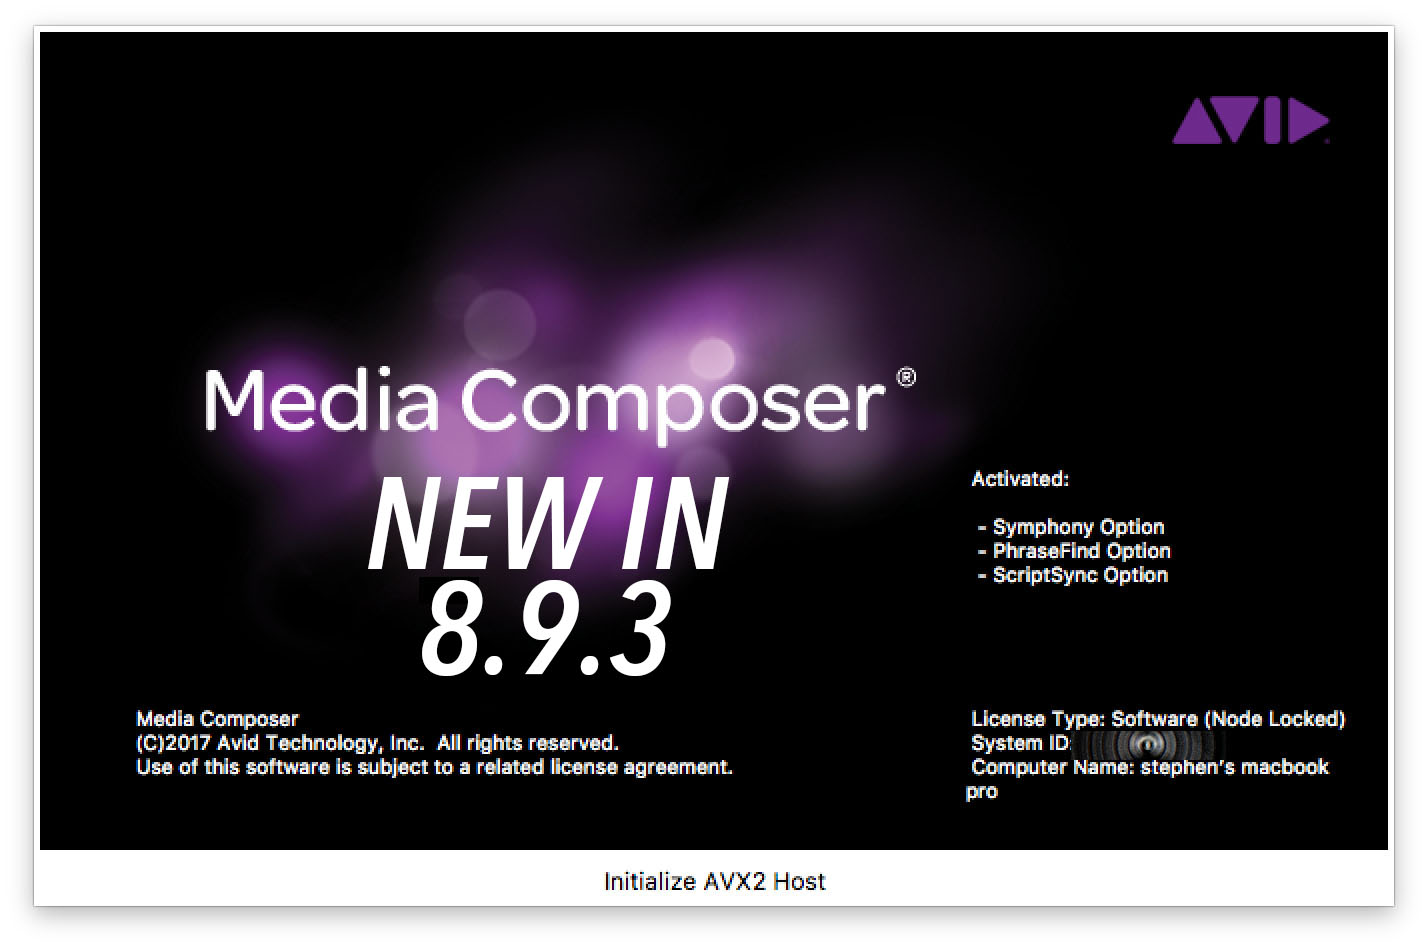 Latest Avid Release dropped today - some nice new features 4